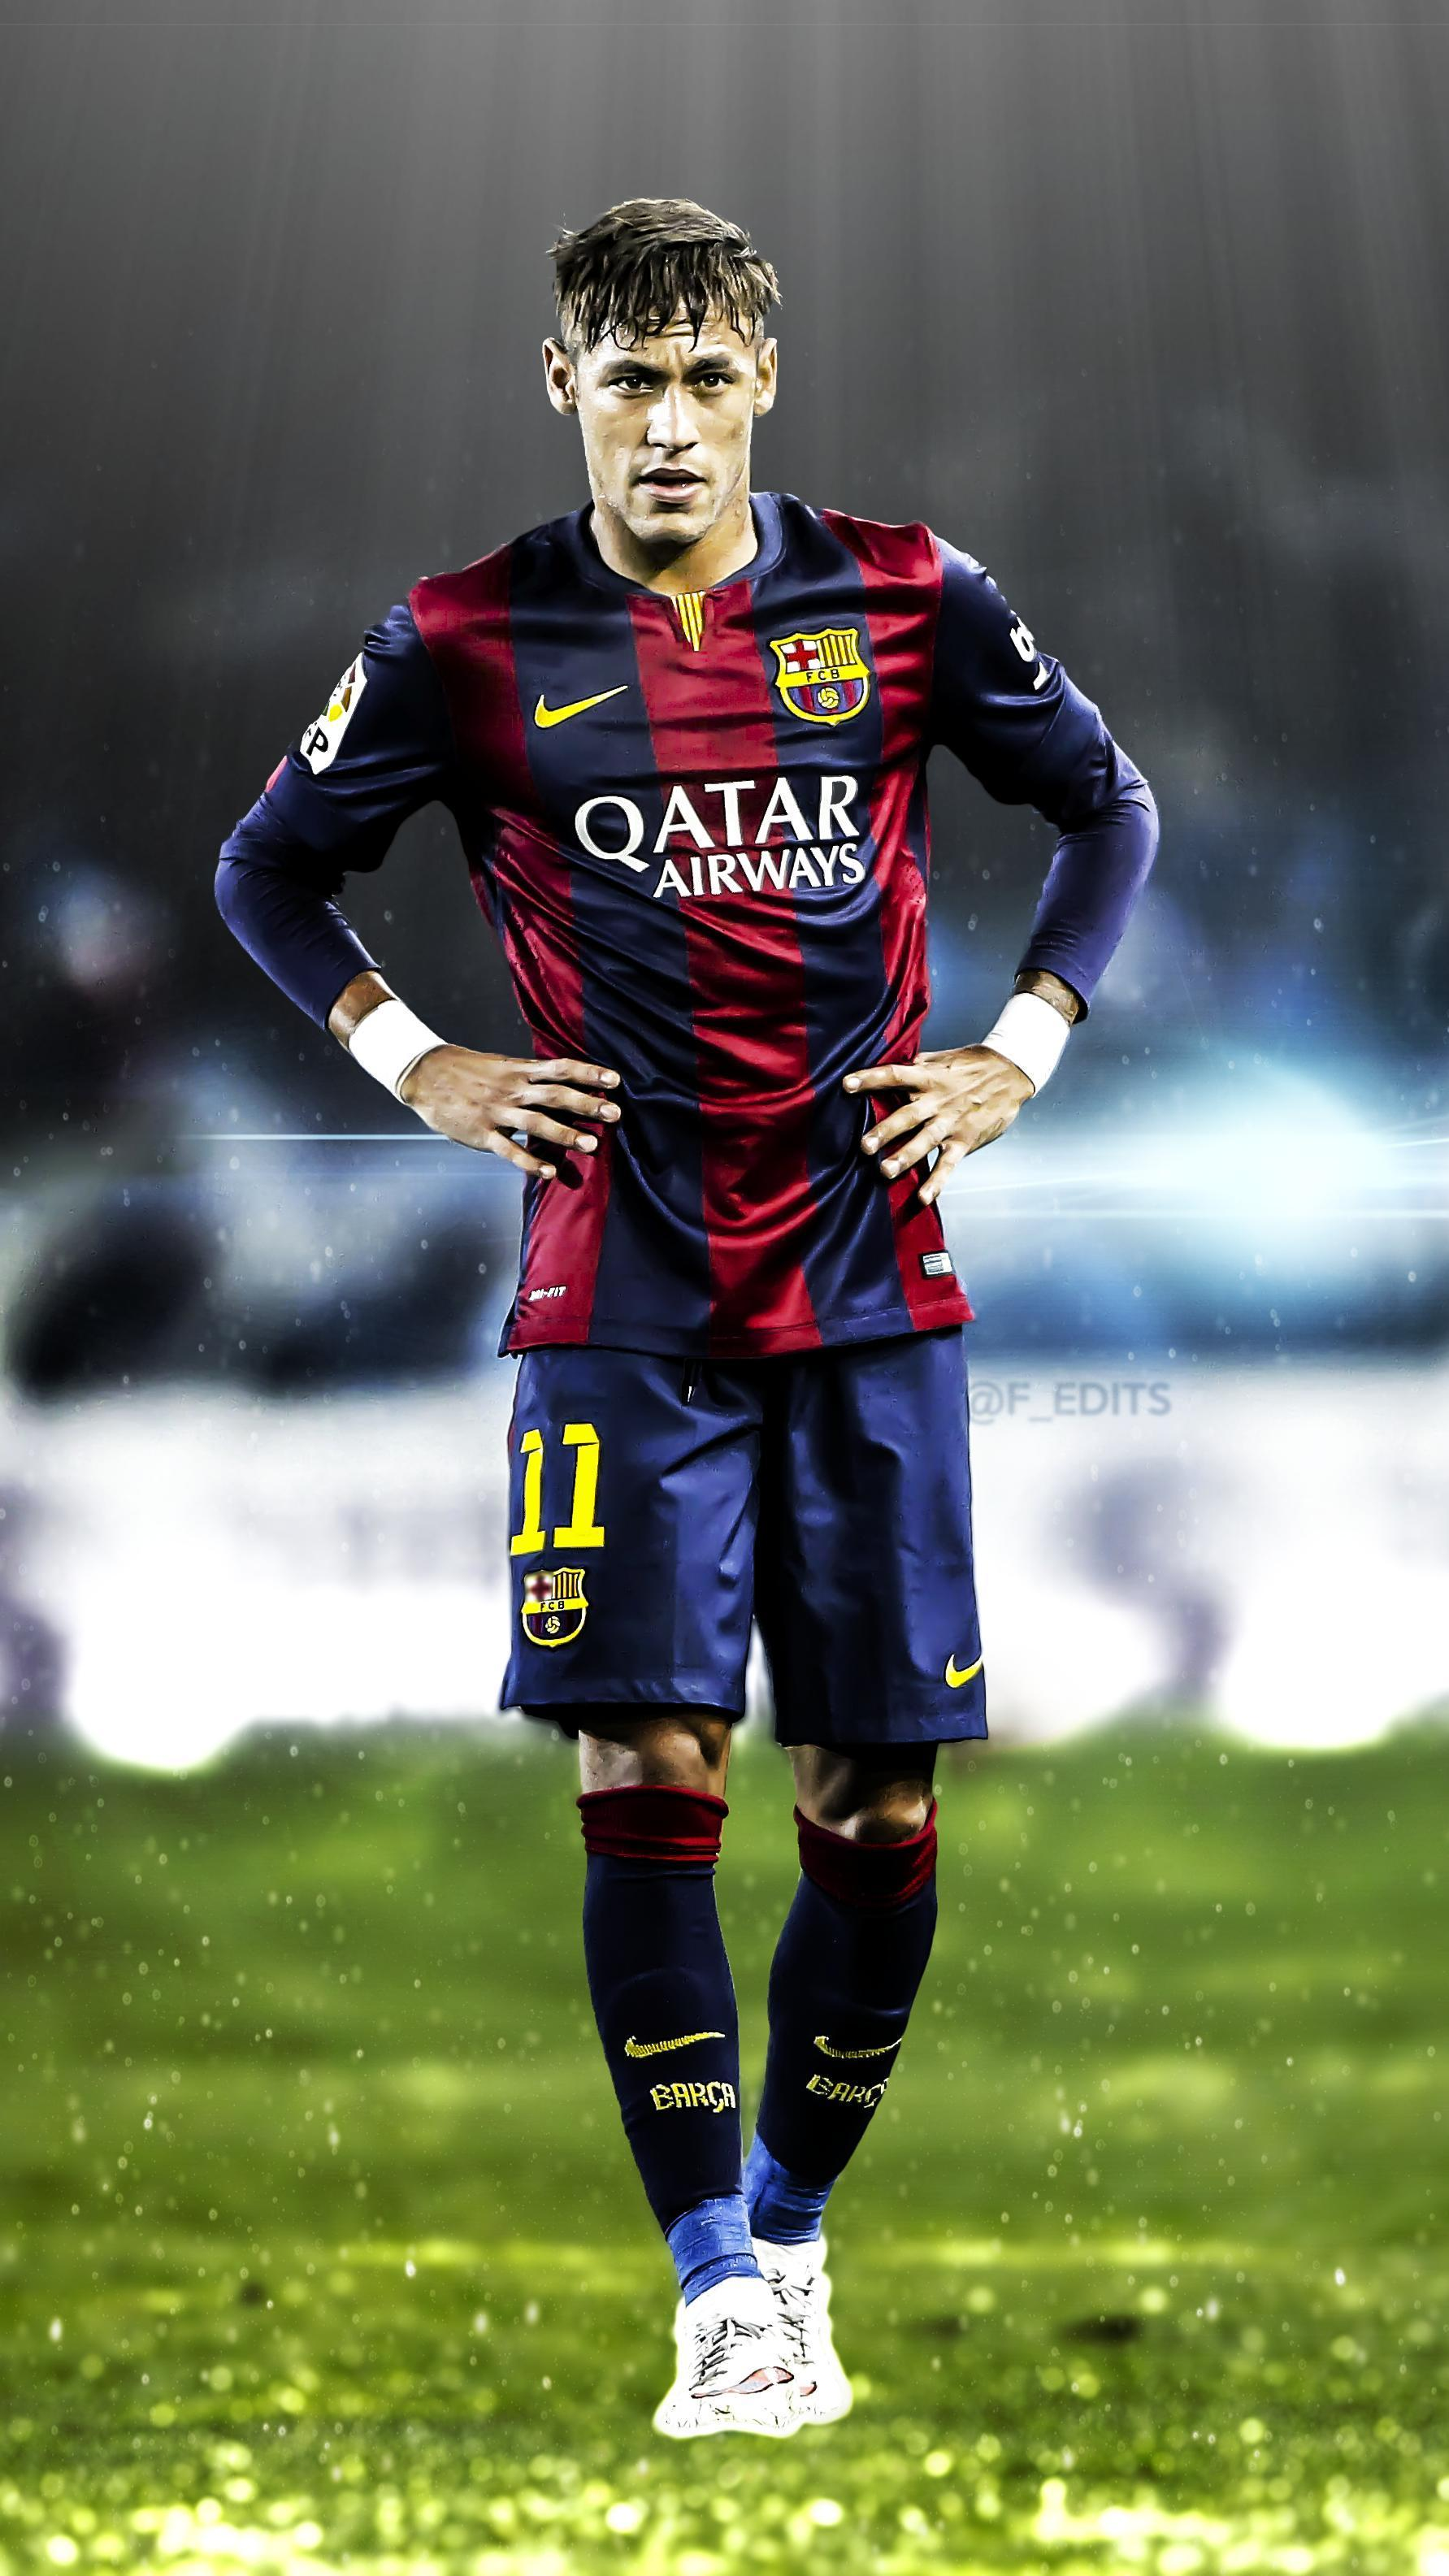 Neymar Jr Wallpaper HD Mobile Iphone 6s Galaxy U2022 IPhones Wallpapers